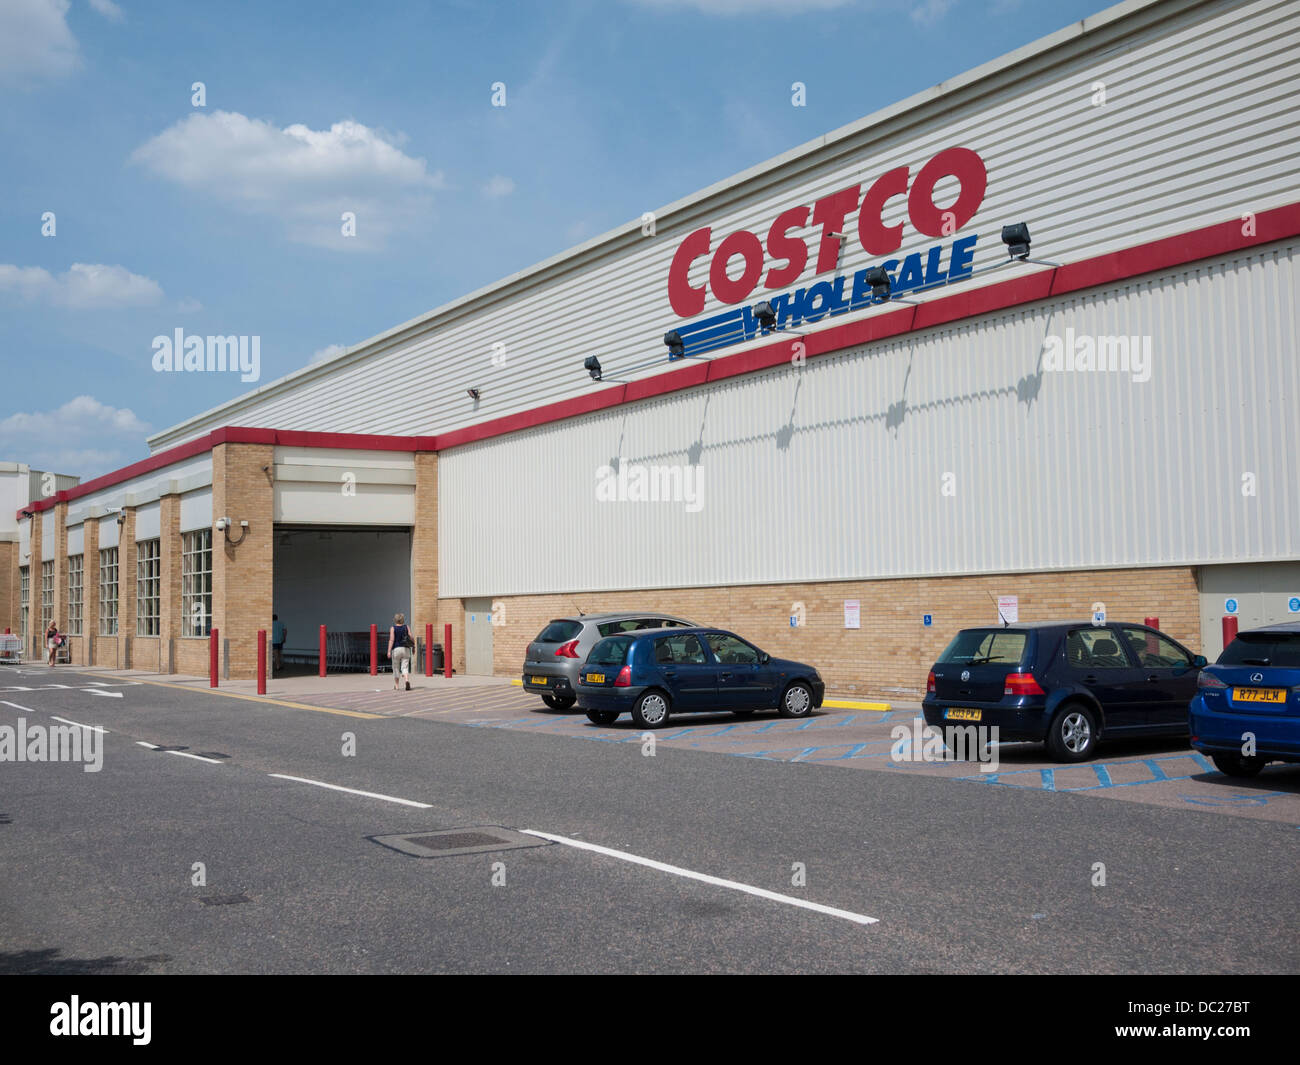 costco join the club The costco anywhere visa and the sam's club mastercard offer rewards that can compete with some of the best cash-back cards — but both have their drawbacks costco anywhere visa® card by citi sam's club mastercard rewards on gas purchases.